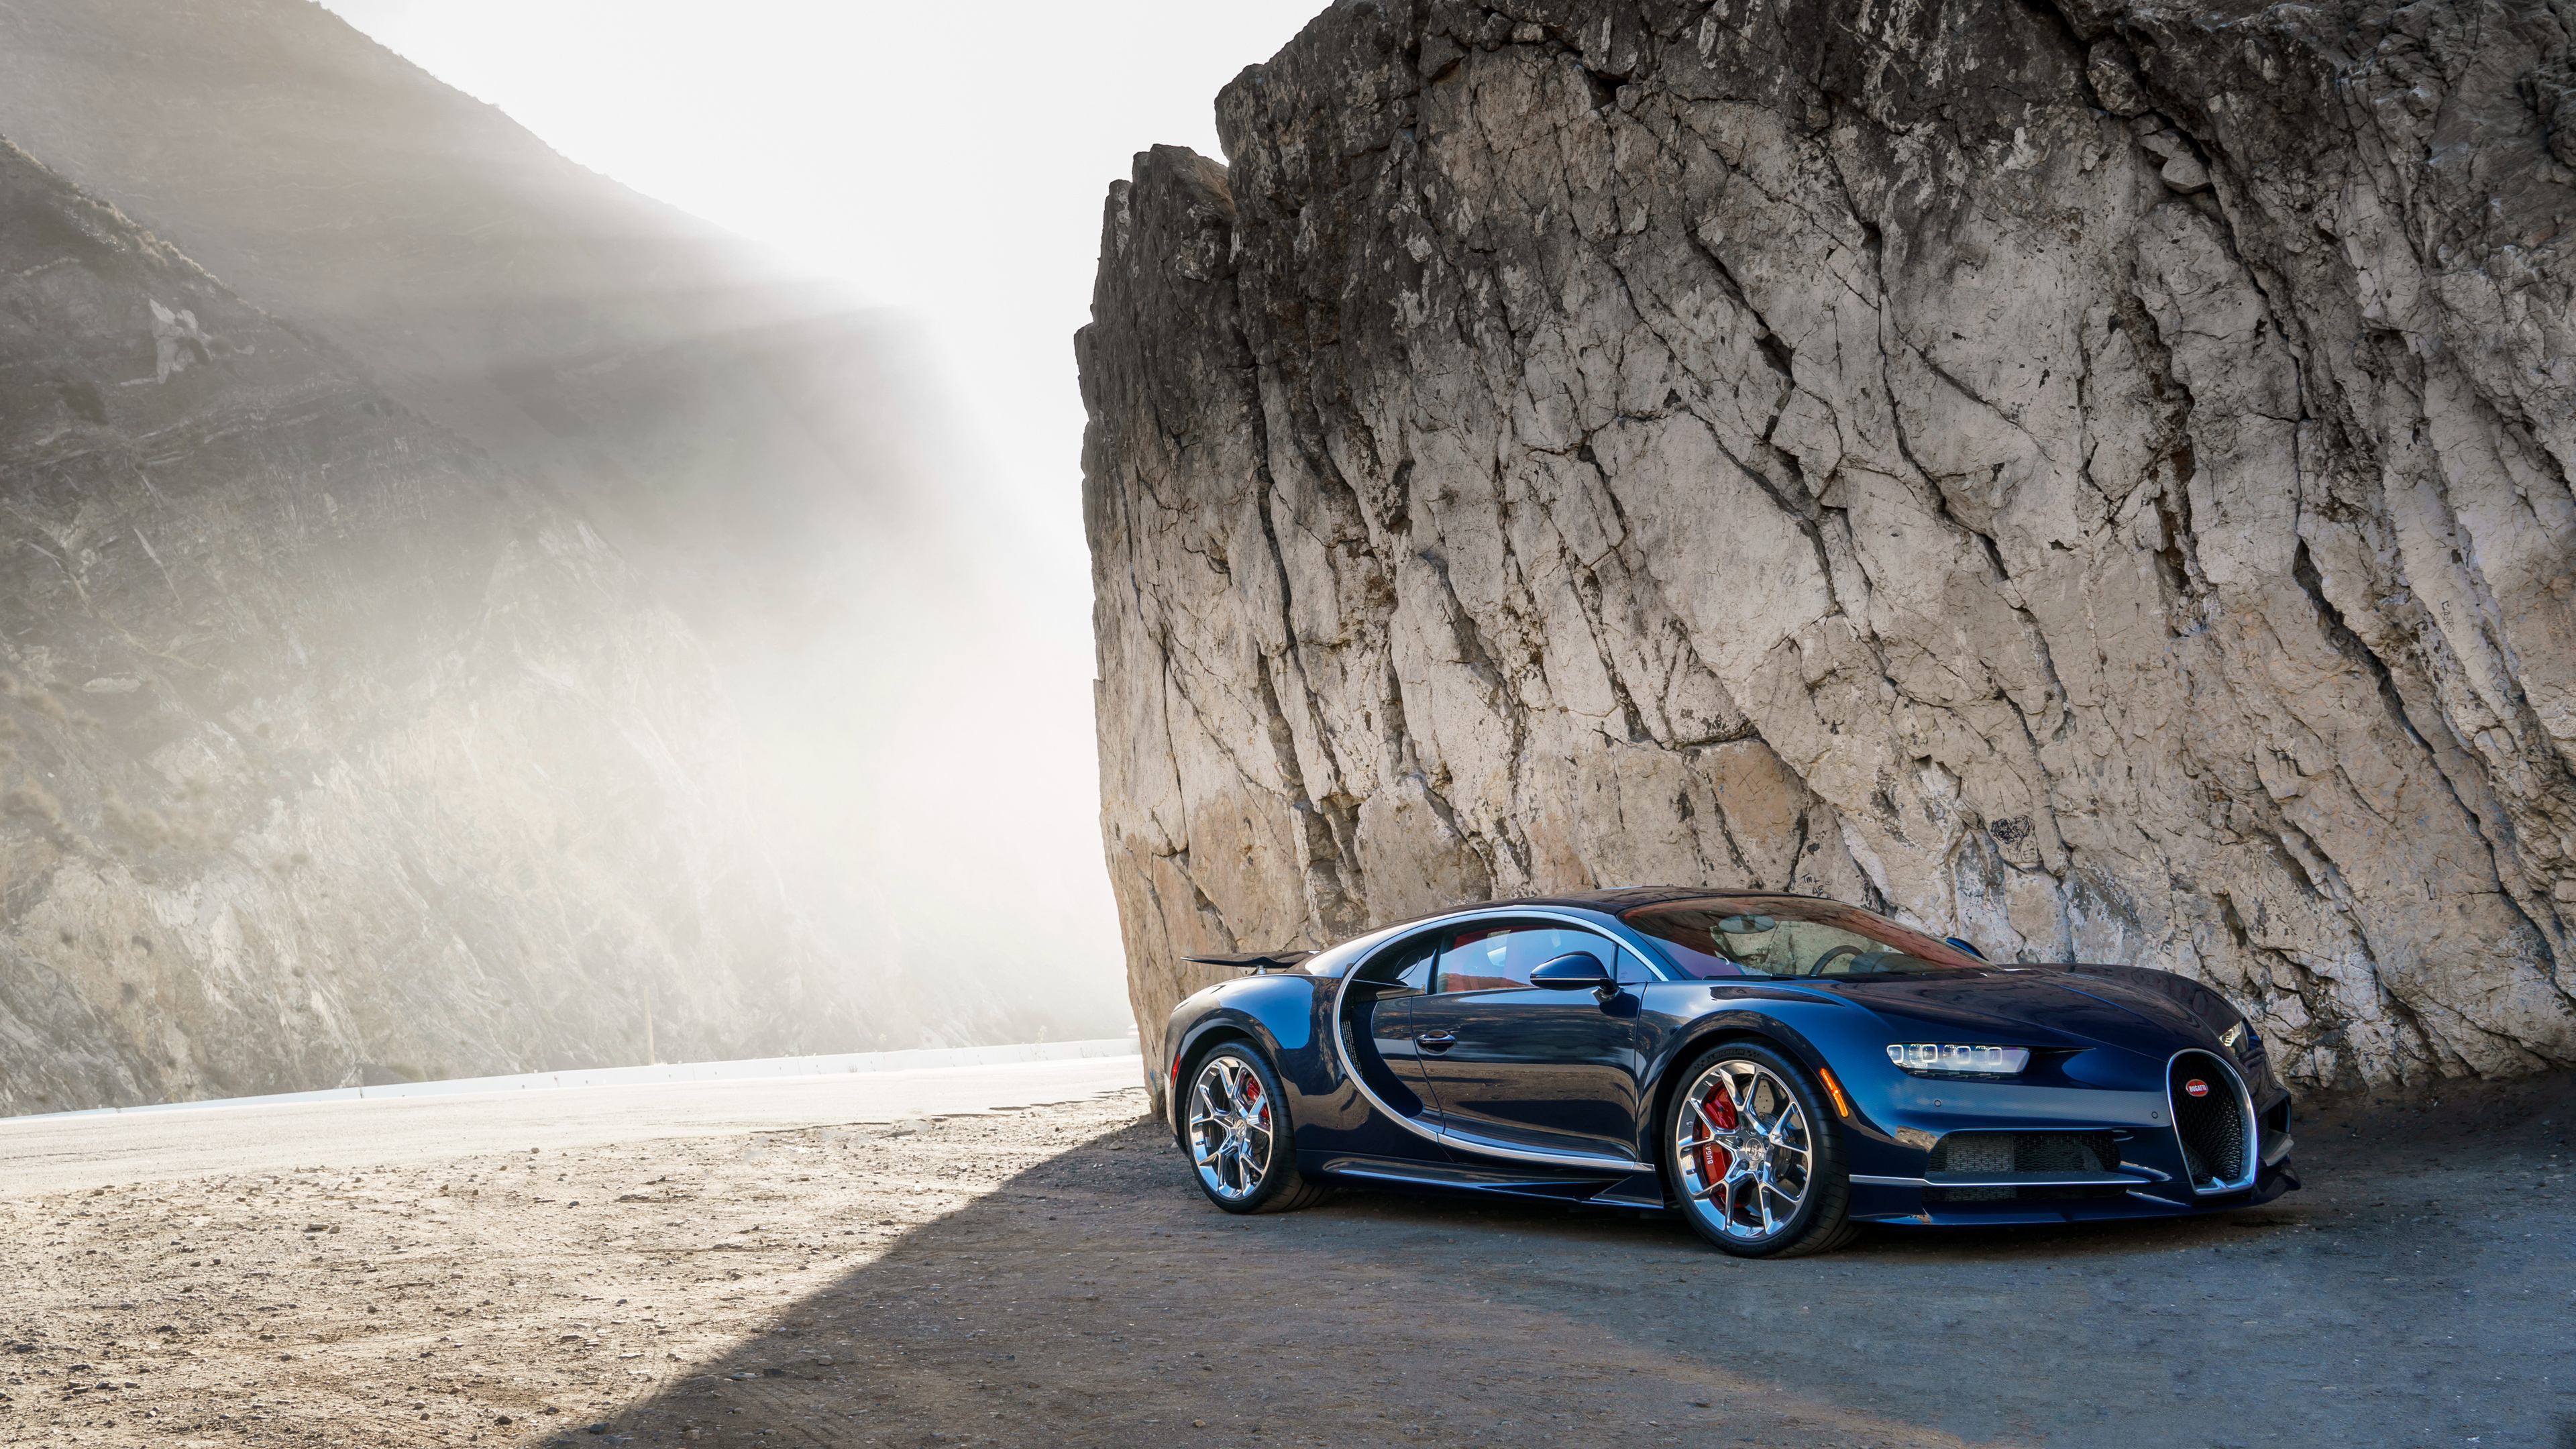 2018 bugatti chiron wallpaper | hd car wallpapers | id #6948